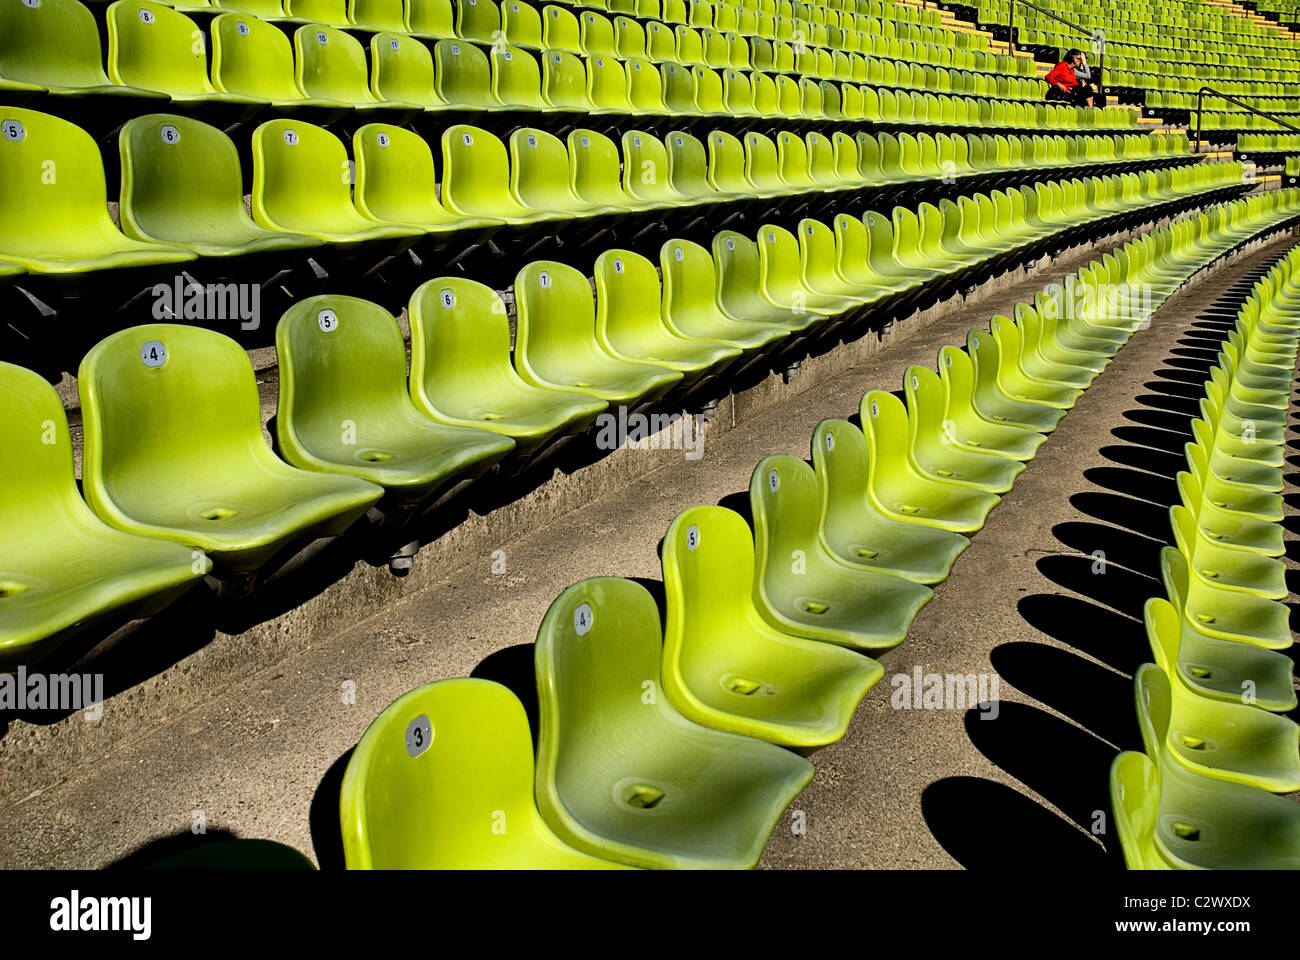 Germany Bavaria Munich Olympic Stadium curved section of bright green seating with single person seated. Stock Photo